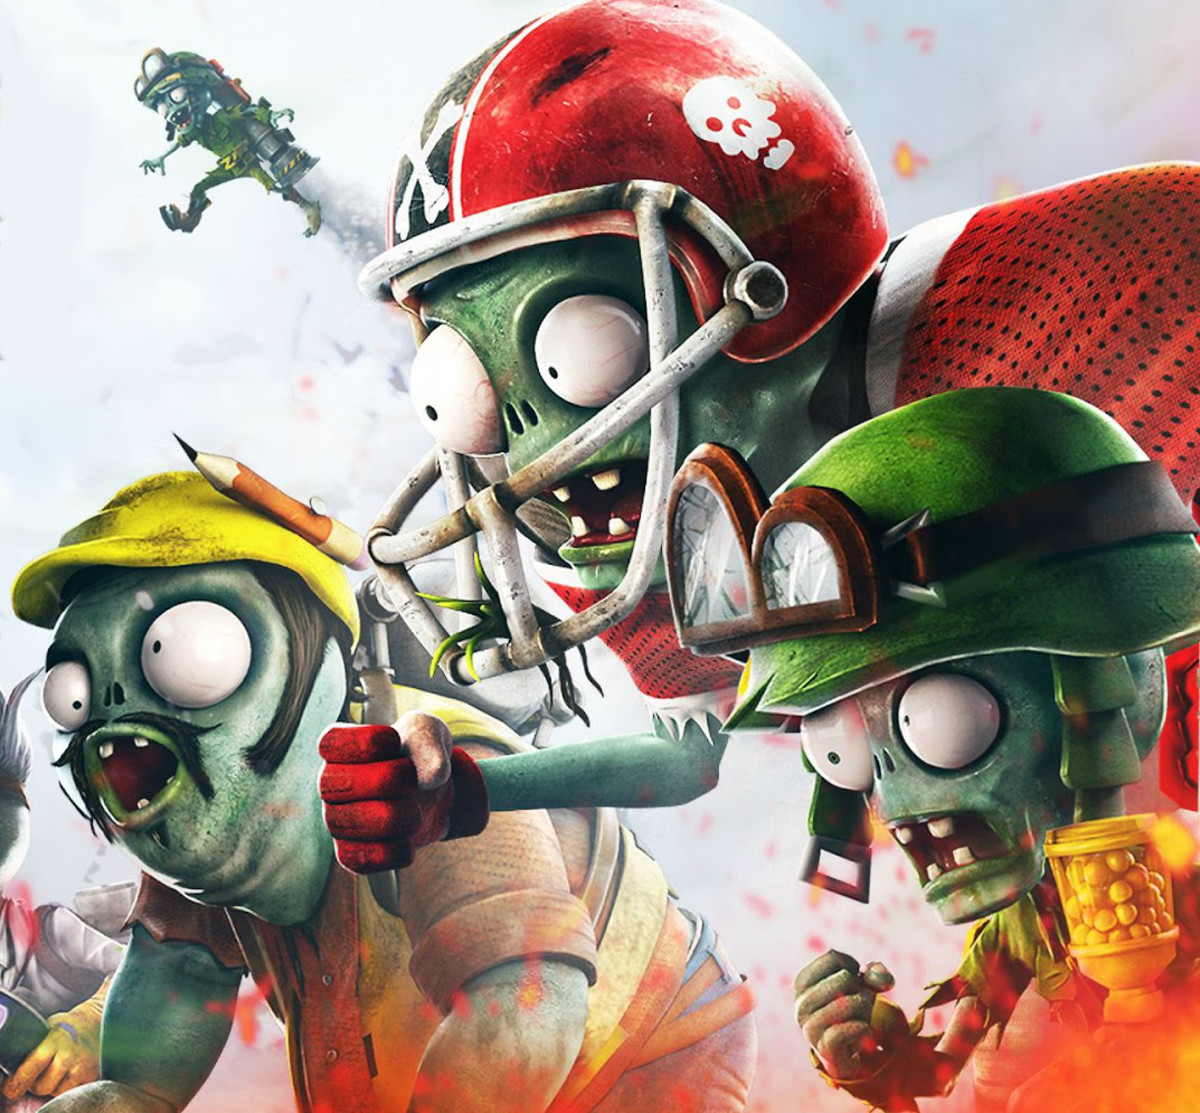 Plants Vs Zombies: Which Zombie Are You?